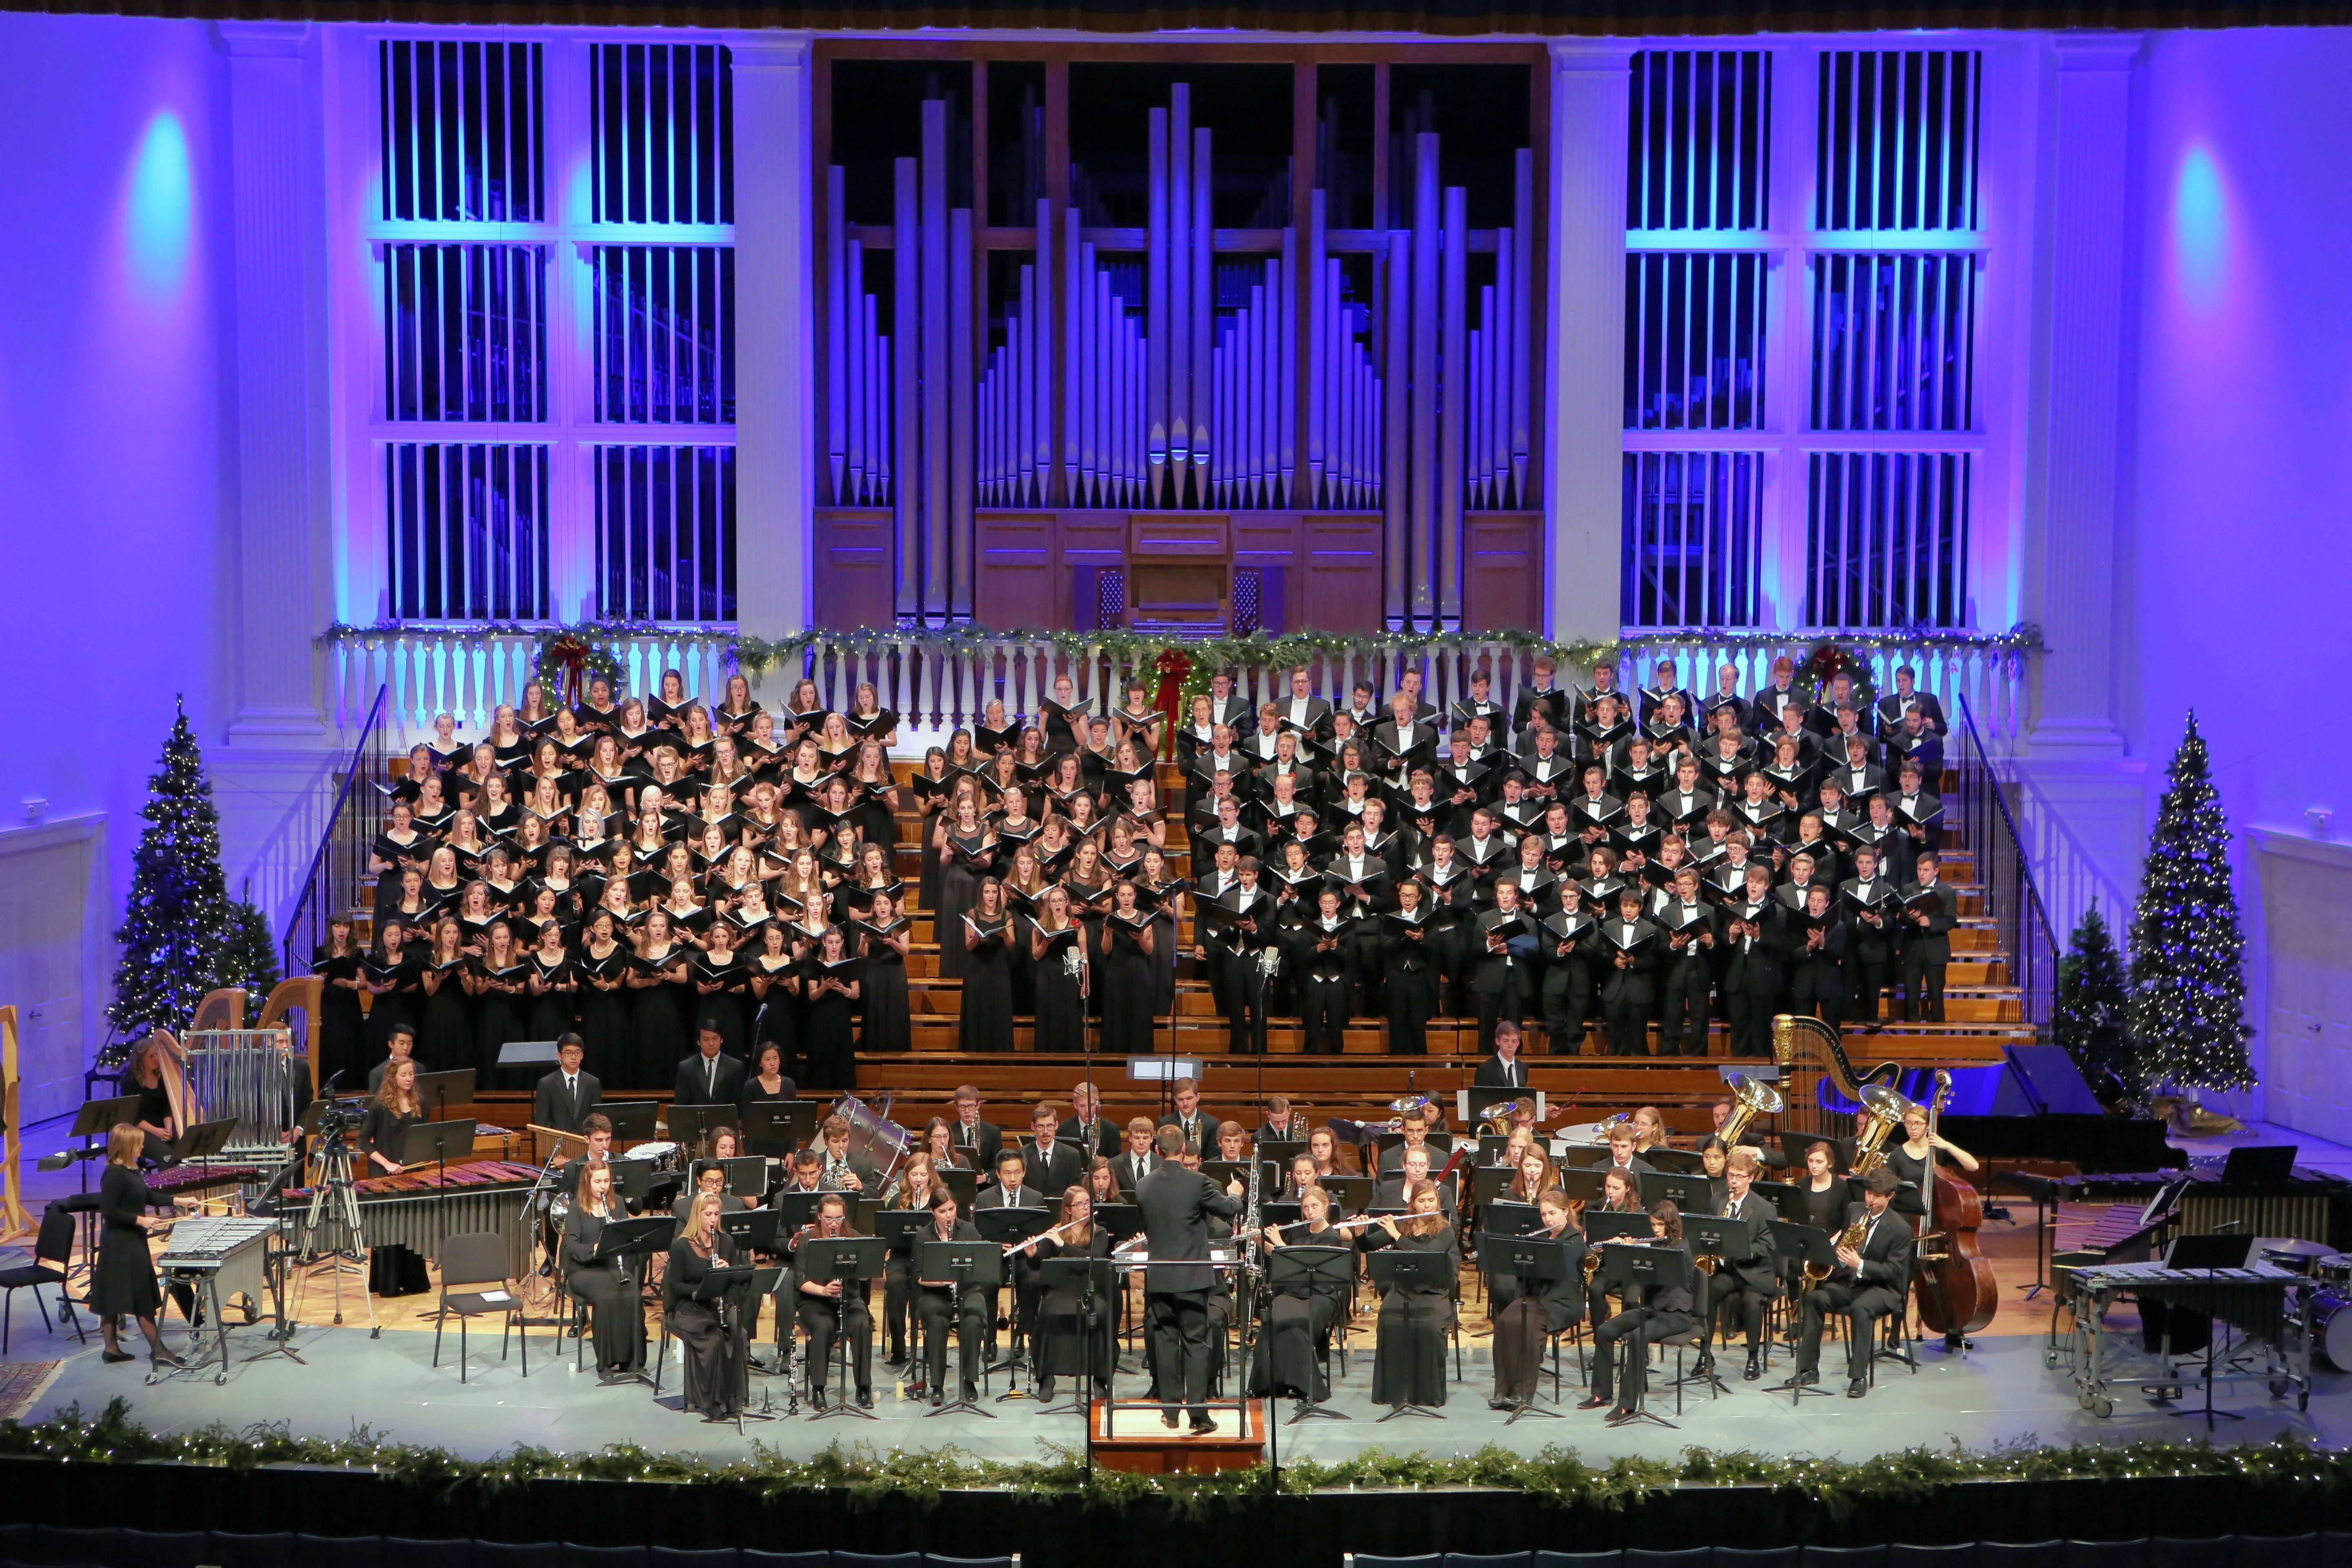 Wheaton College will celebrate its annual Christmas Festival with performances Friday and Saturday, Dec. 7-8, in Edman Chapel.